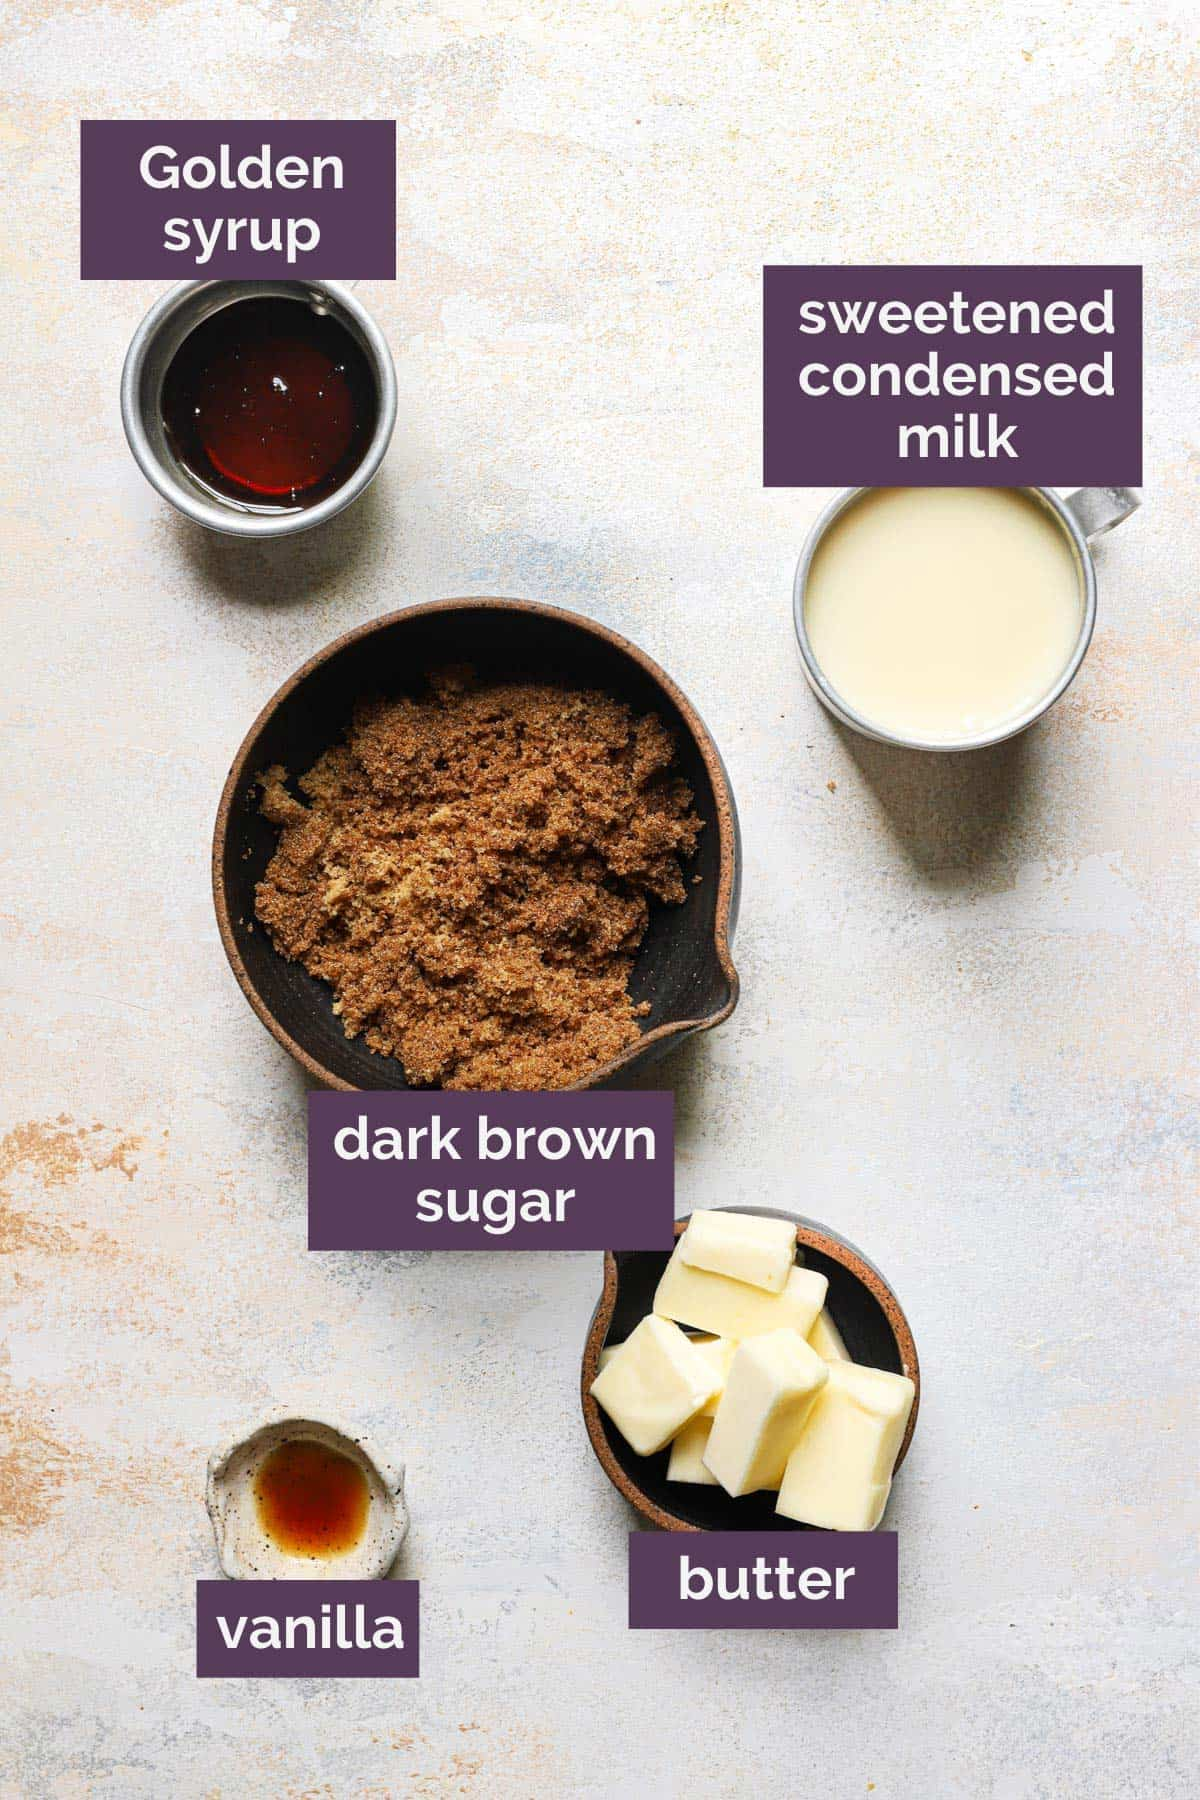 Ingredients for the caramel filling with labels for each ingredient in purple.